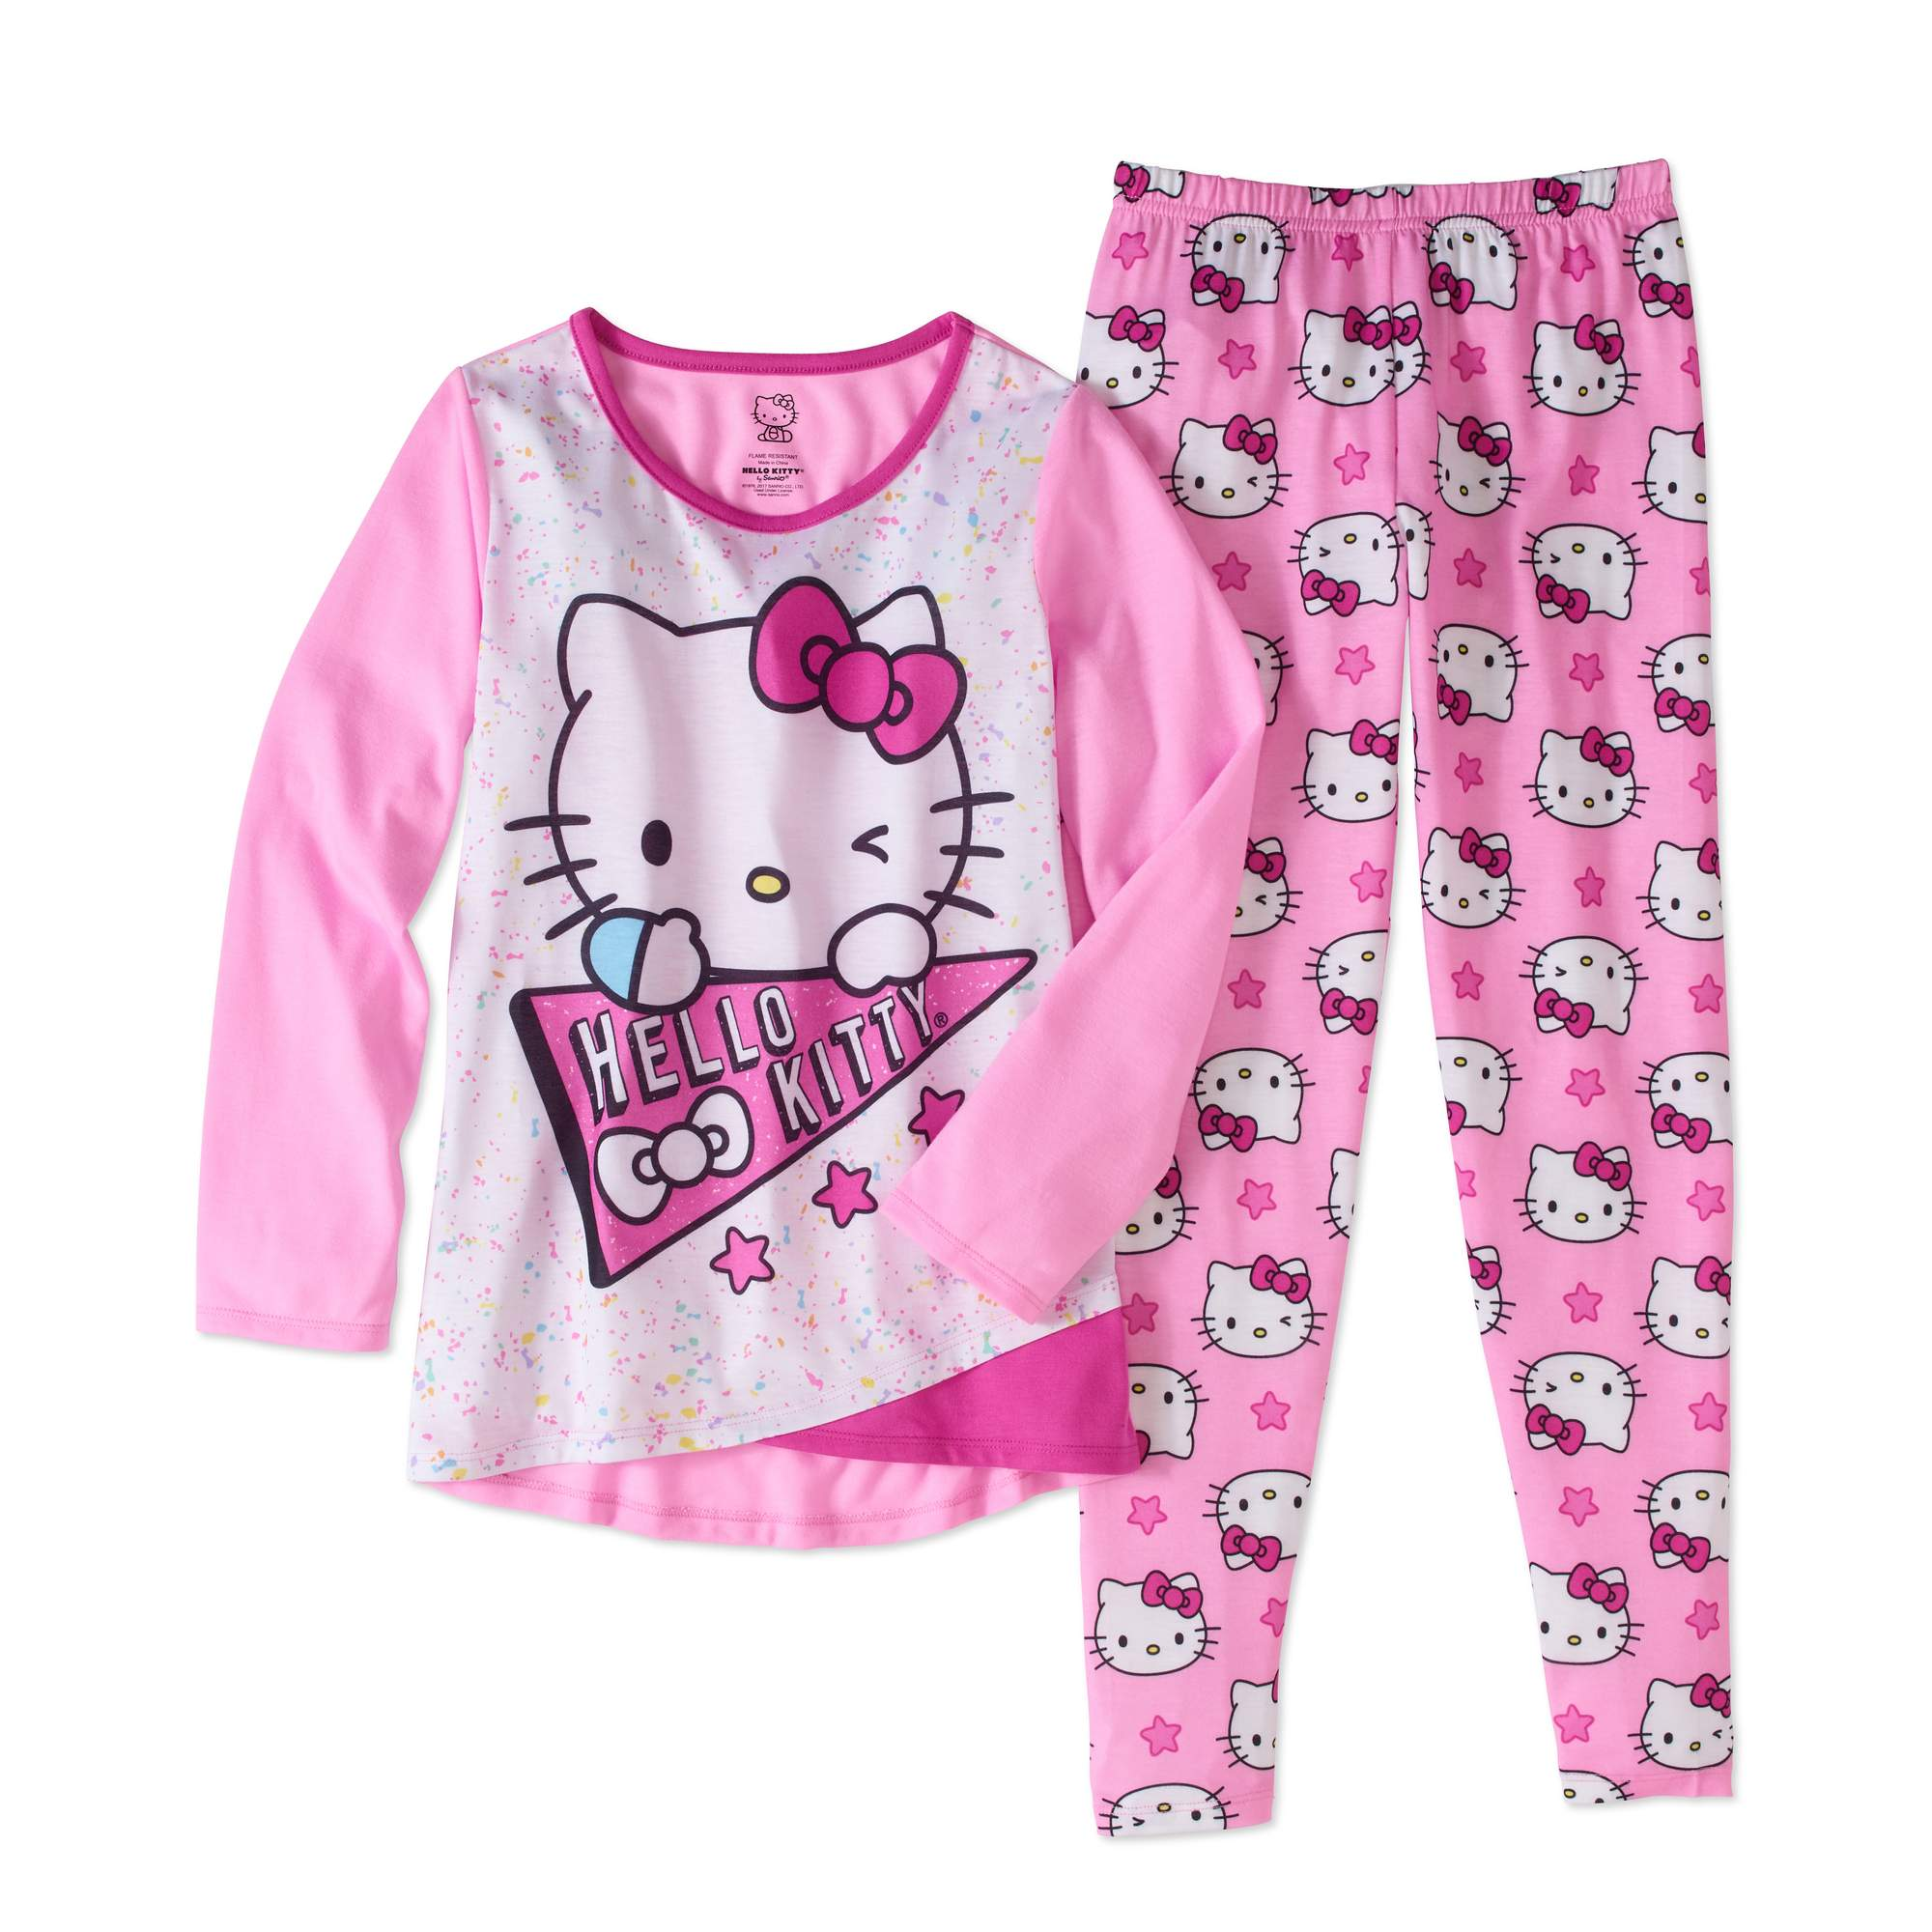 Hello Kitty Big Girls' Legging Sleepwear Set